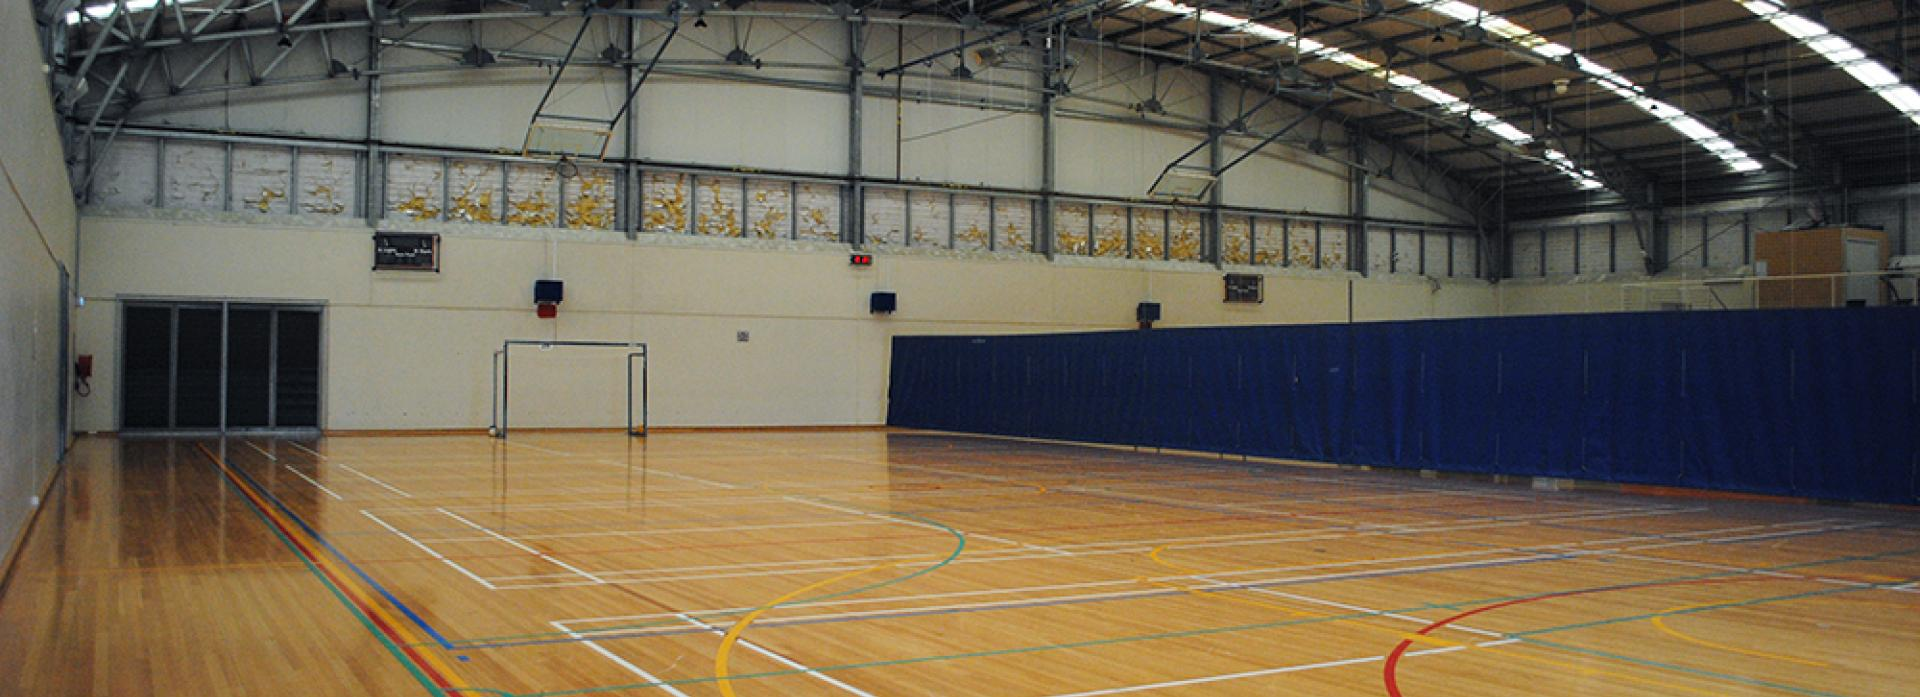 Sports hall and court